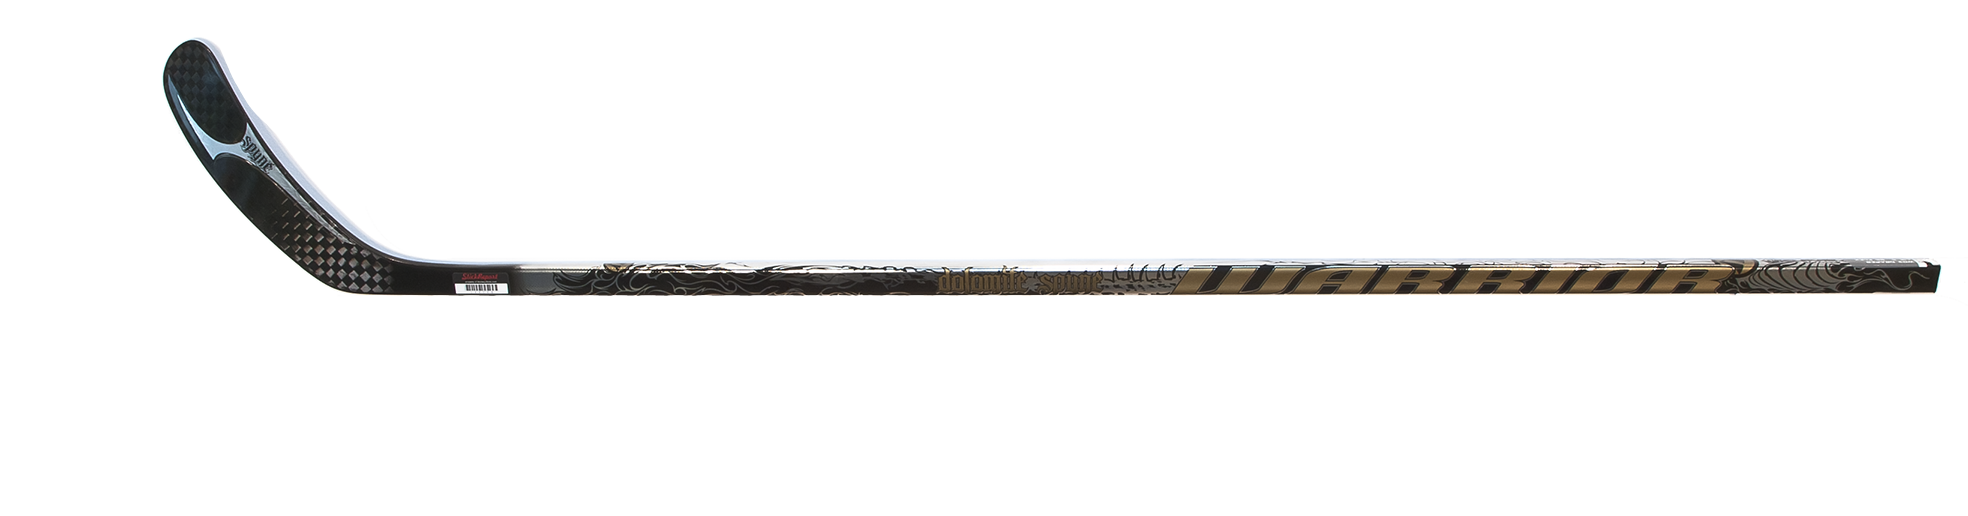 Ice hockey stick png. Images free download